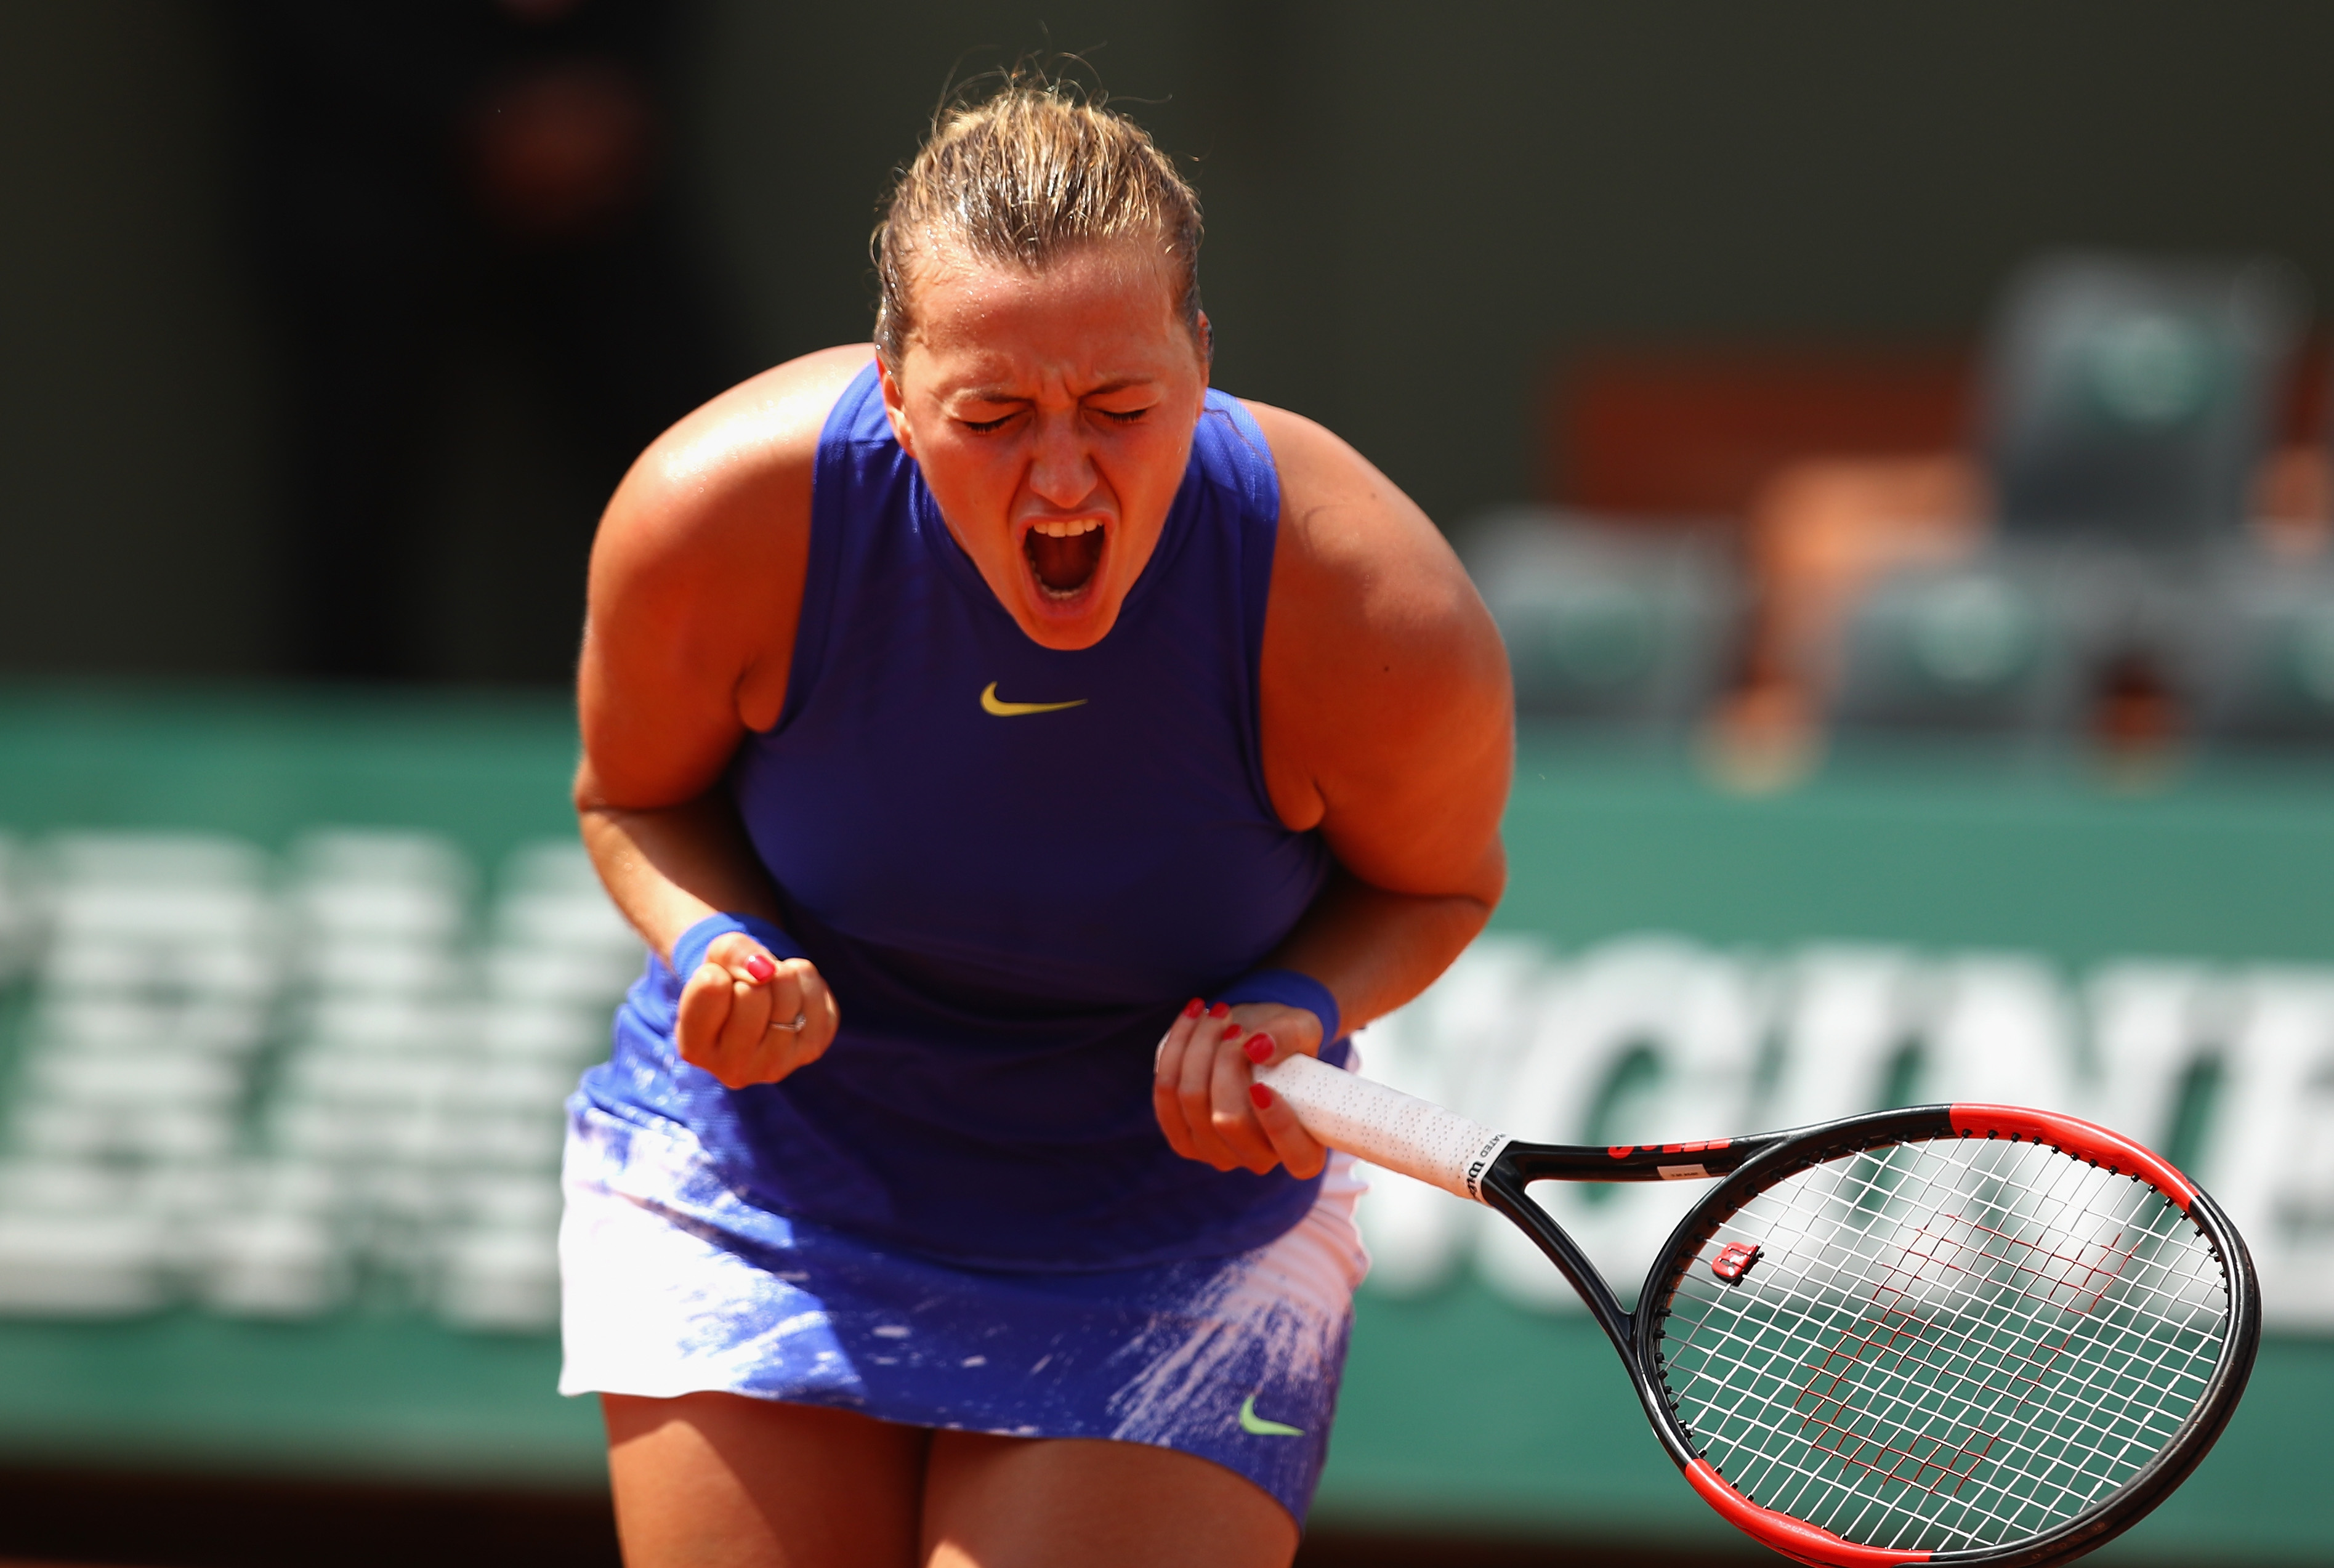 PARIS, FRANCE - MAY 31: Petra Kvitova of The Czech Republic shows her emotions during the ladies singles second round match against Bethanie Mattek-Sands of The United States on day four of the 2017 French Open at Roland Garros on May 31, 2017 in Paris, France. (Photo by Clive Brunskill/Getty Images)